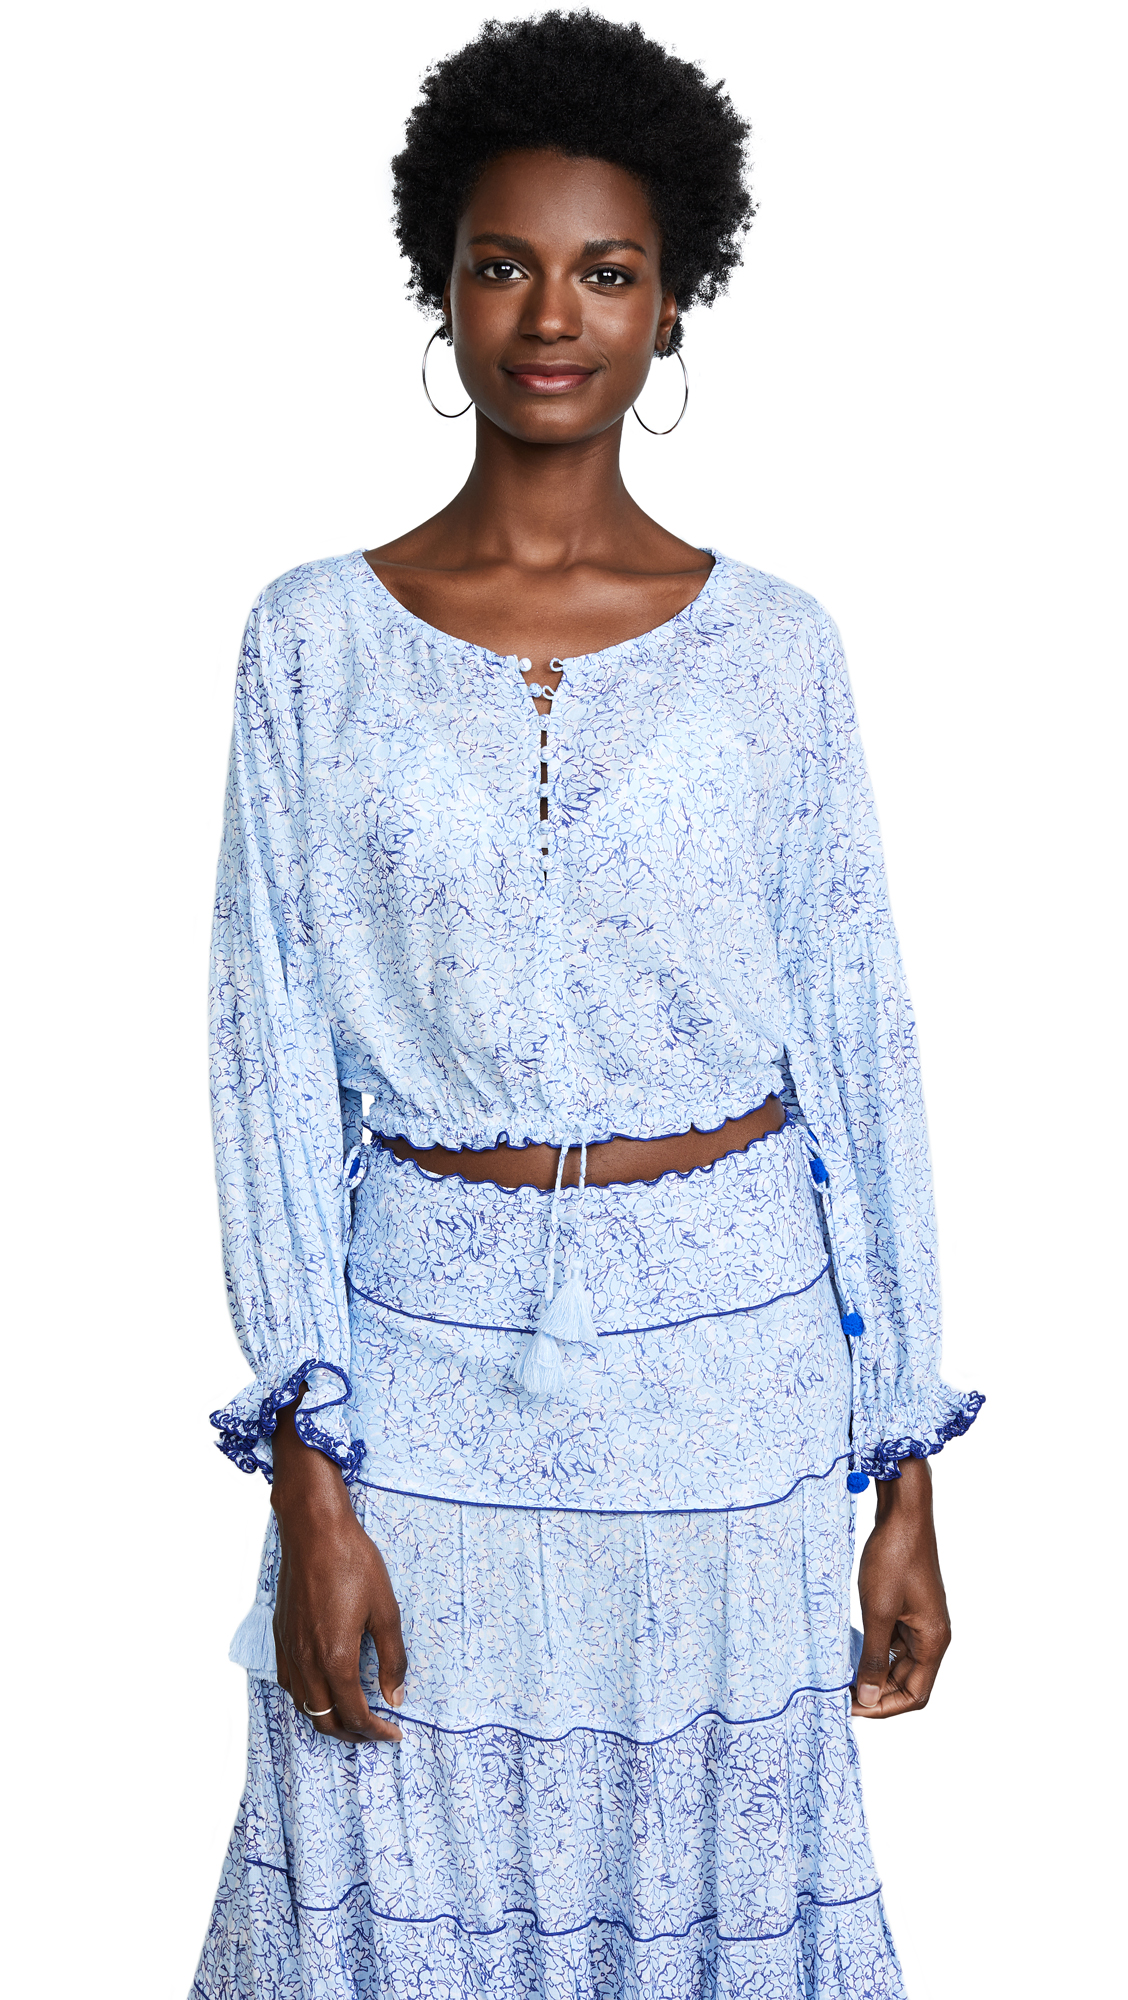 POUPETTE ST BARTH Betty Mini Top in Blue Joy